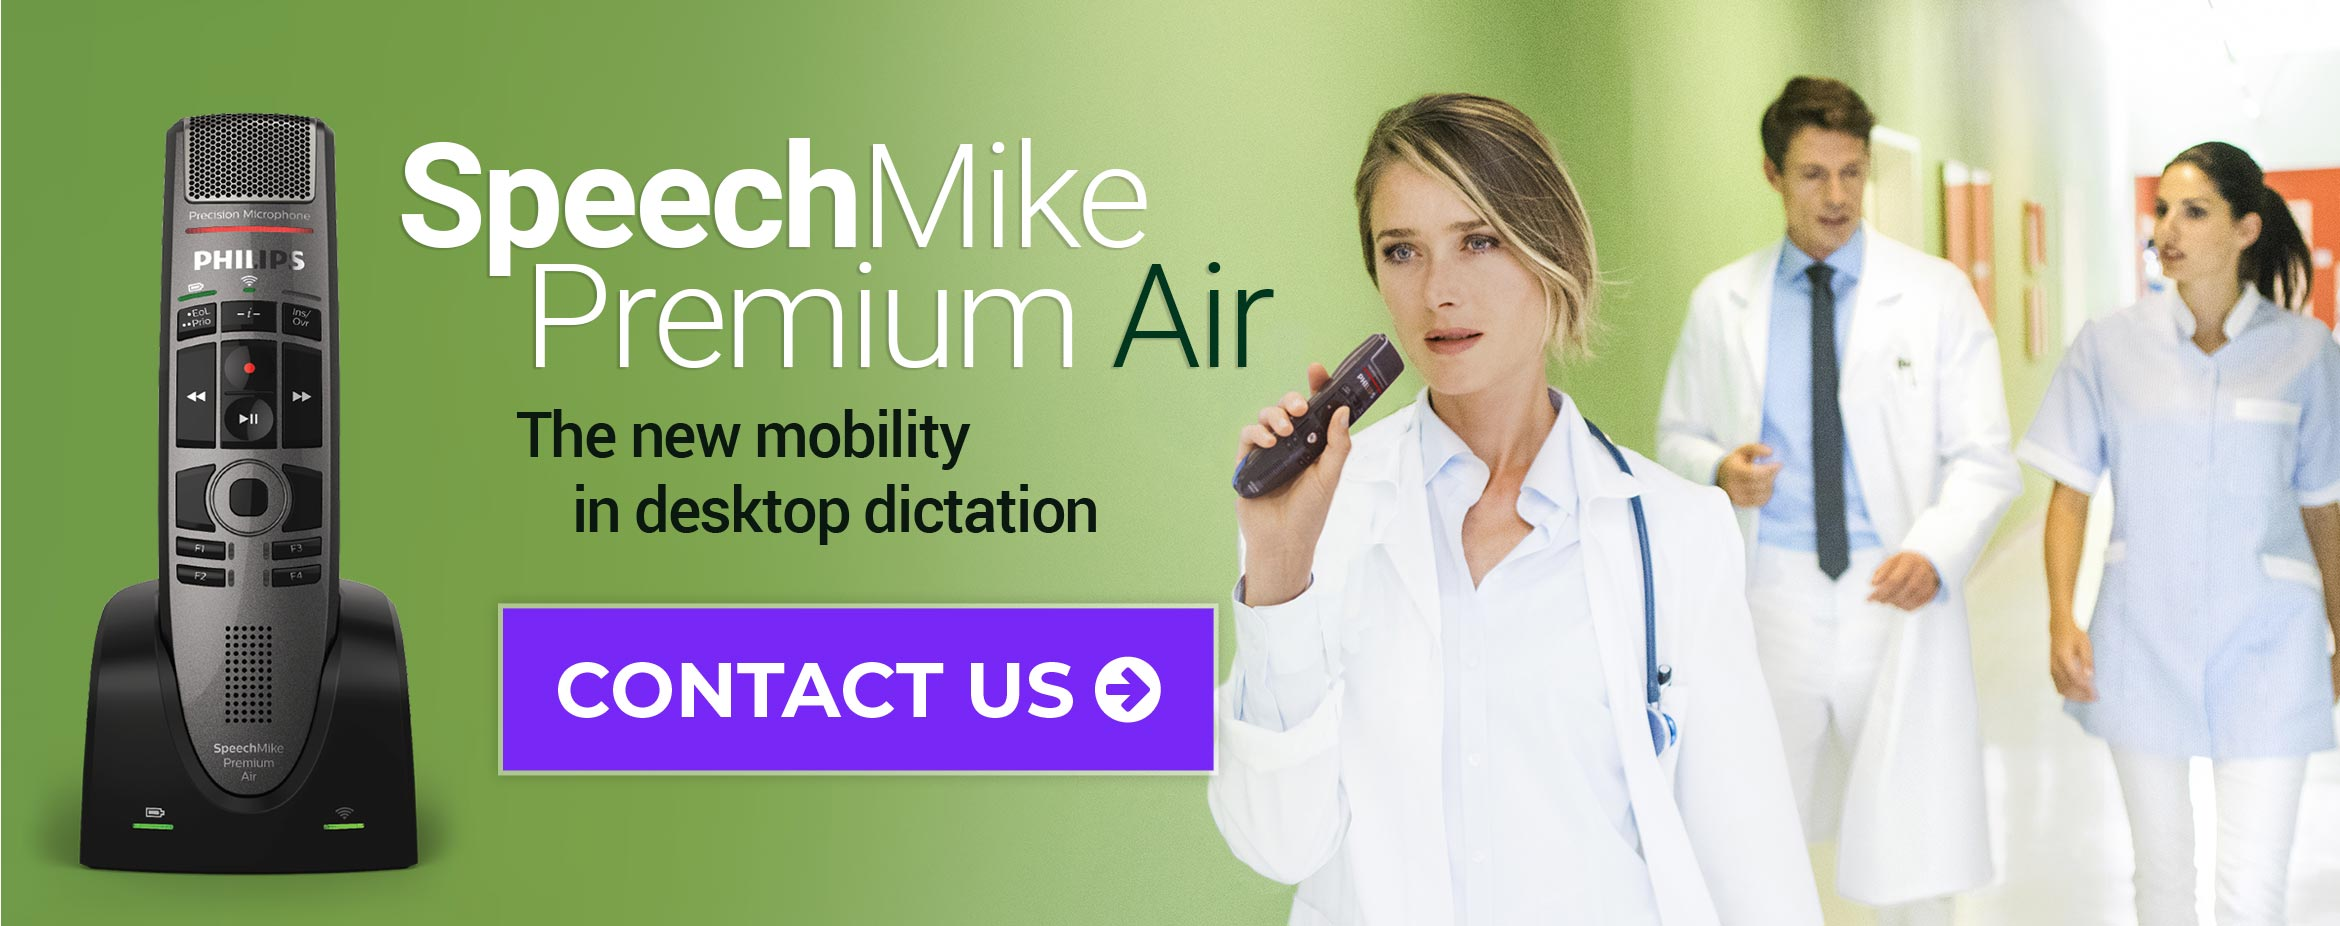 SpeechMike Premium Air